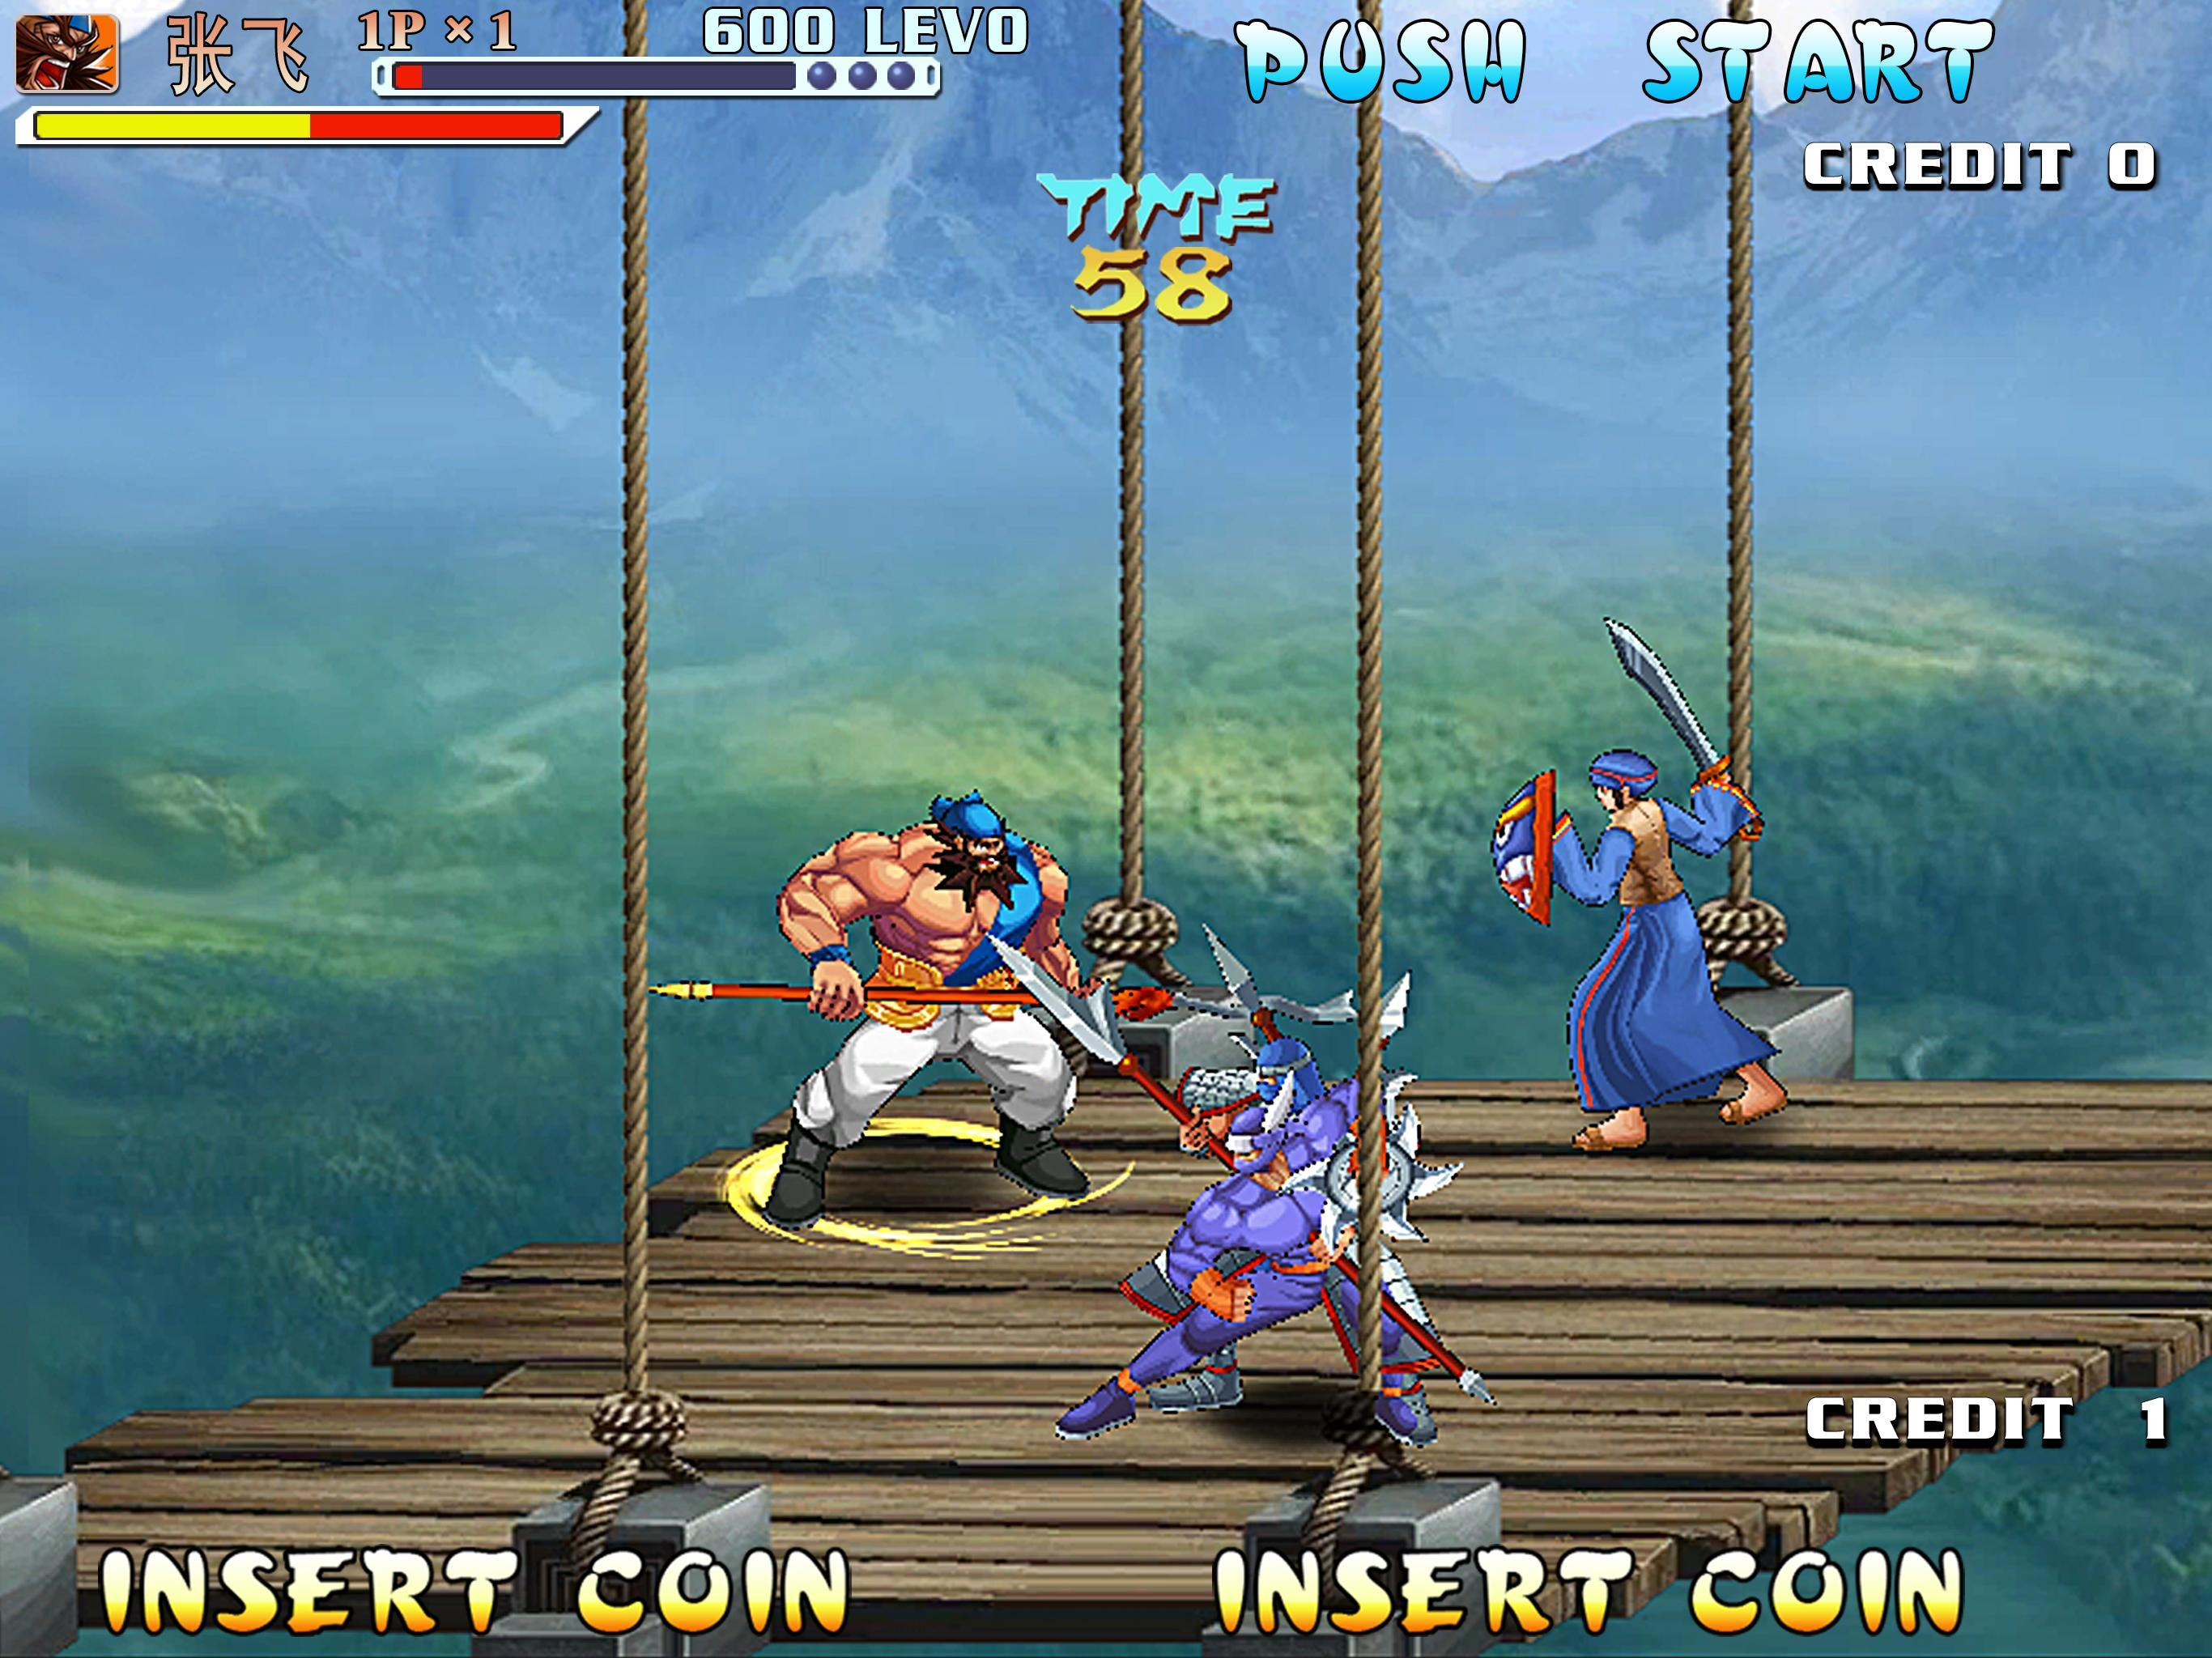 Knights of Valour for Android - APK Download